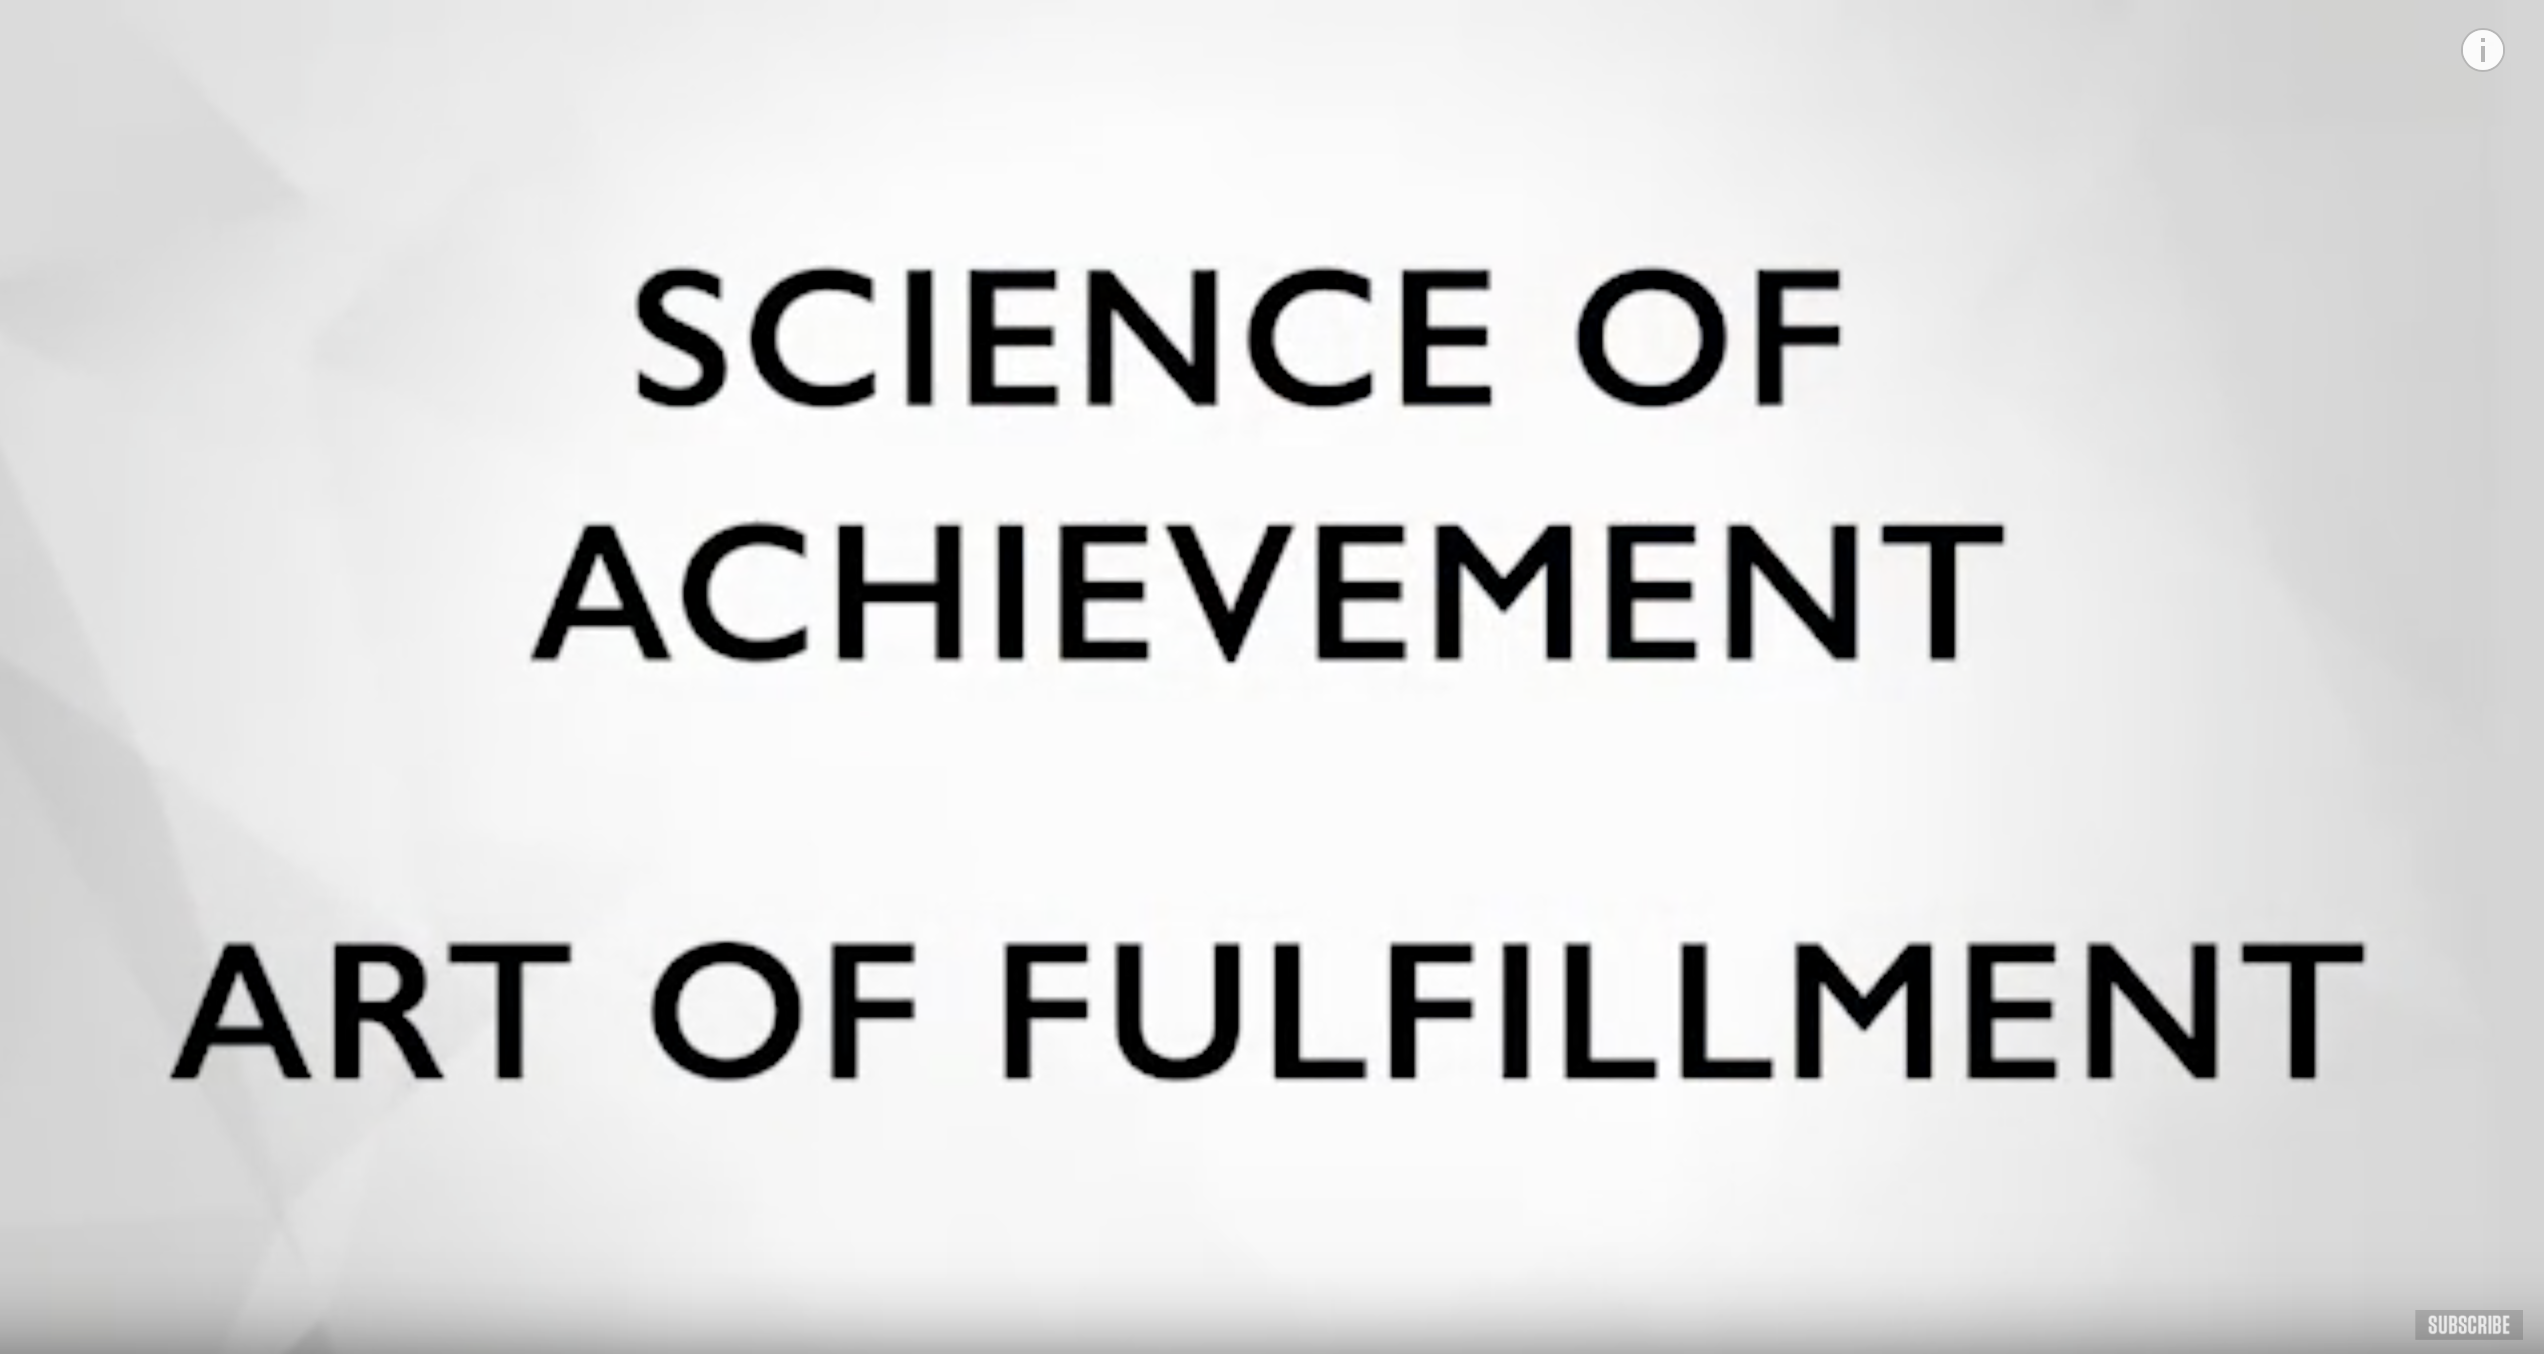 The Science of Achievement